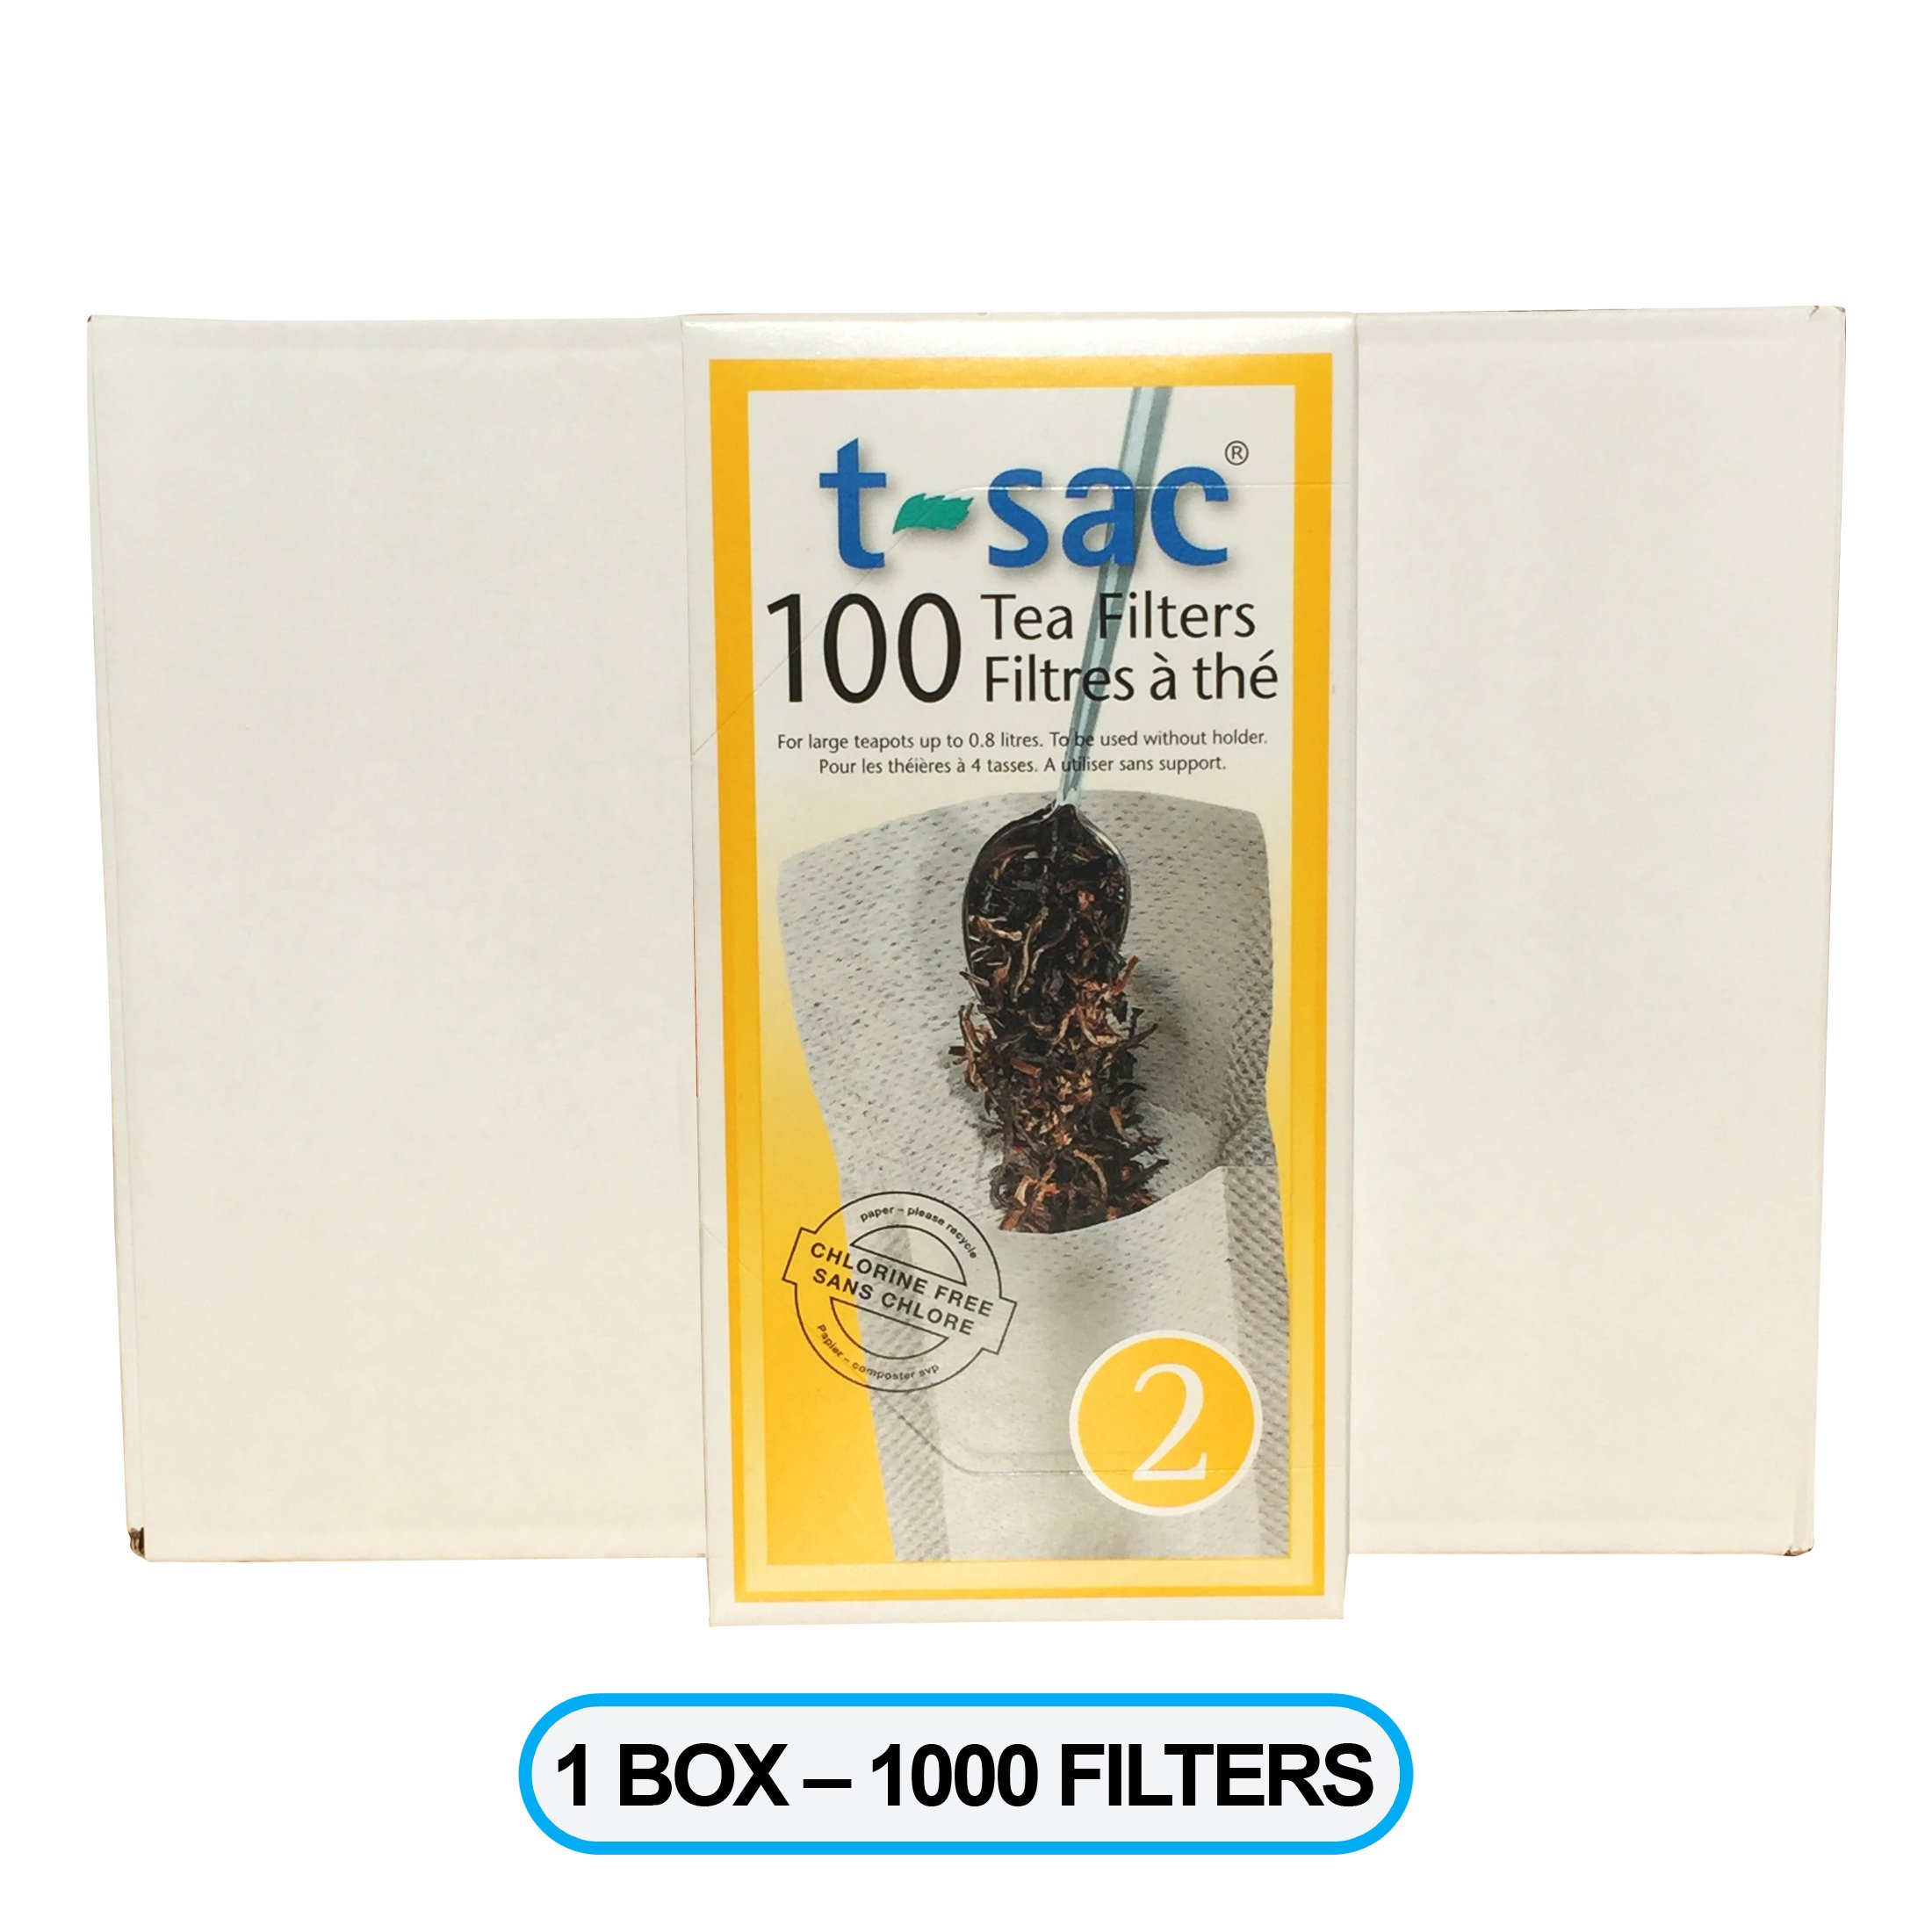 Modern Tea Filter Bags, Disposable Tea Infuser, Size 2, One Box of 1000 Filters - Heat Sealable, Natural, Easy to Use Anywhere, No Cleanup – Perfect for Teas, Coffee & Herbs - from Magic Teafit